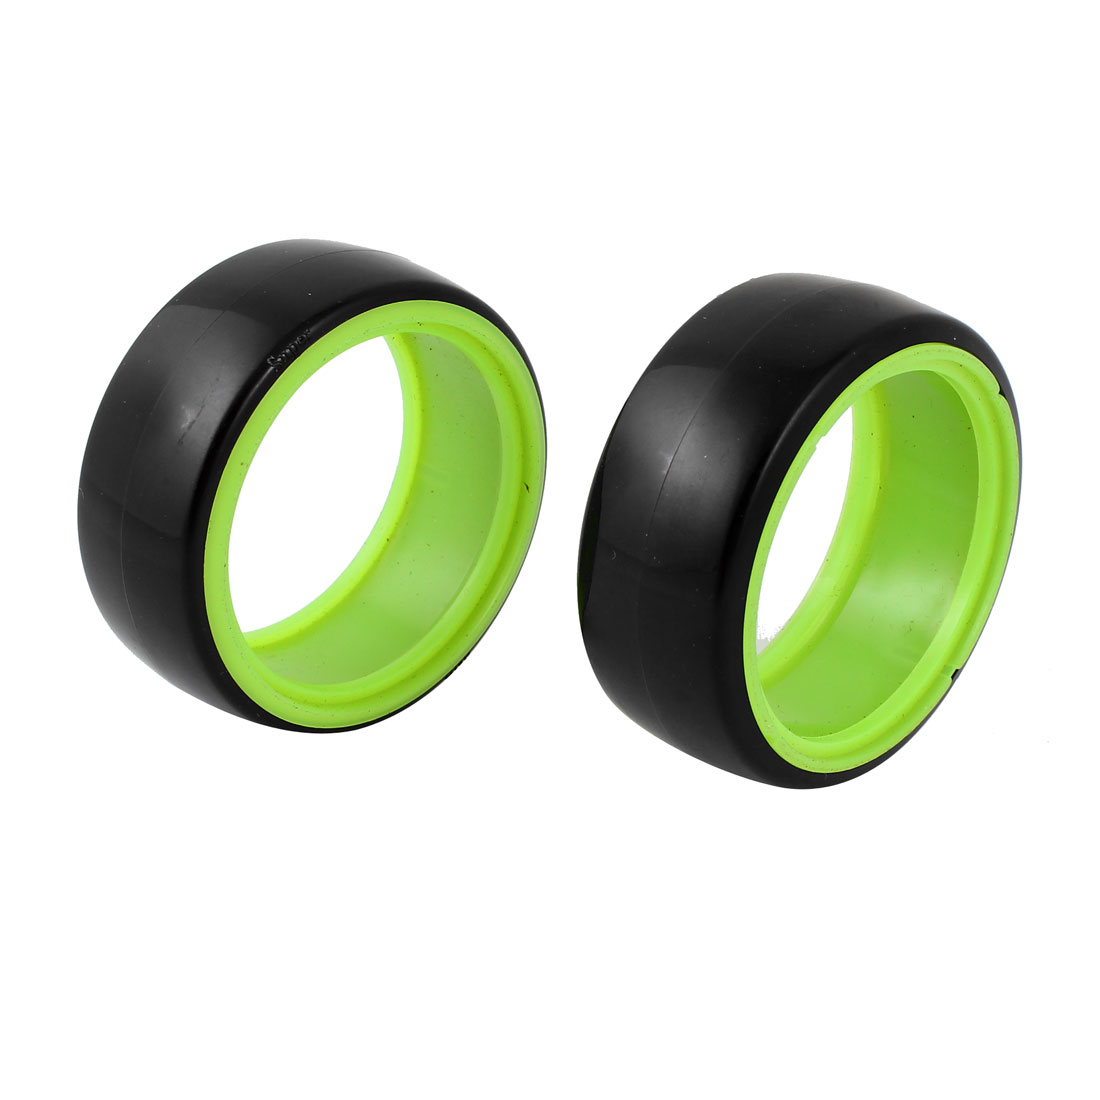 2pcs Black Green 1:10 RC Model Flat Racing Car Truck Drift Wheel Tyre 64mm Dia